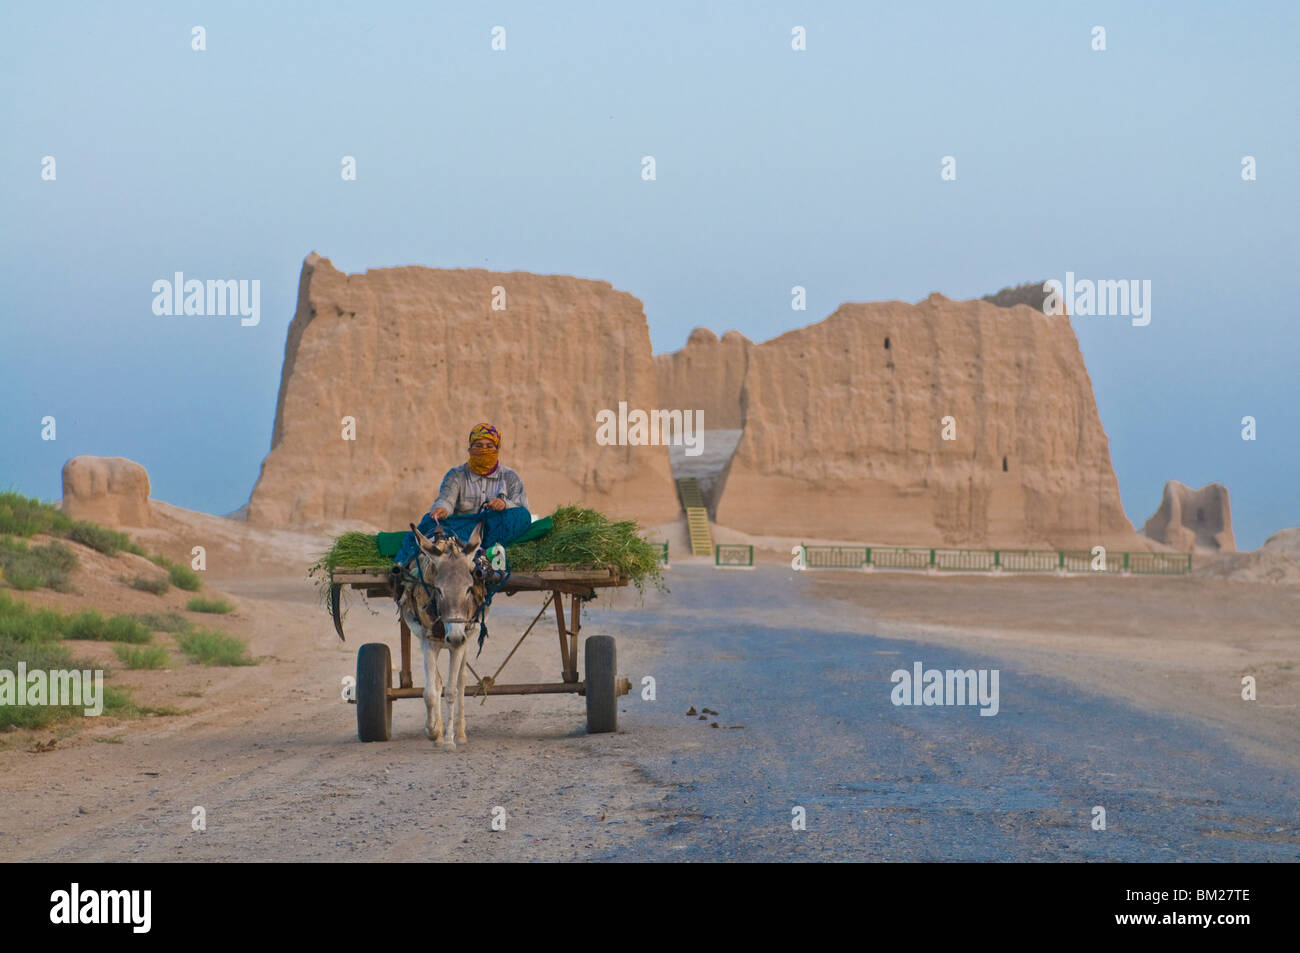 Woman sitting on a donkey cart, Merv, UNESCO World Heritage Site, Turkmenistan, Central Asia, Asia - Stock Image